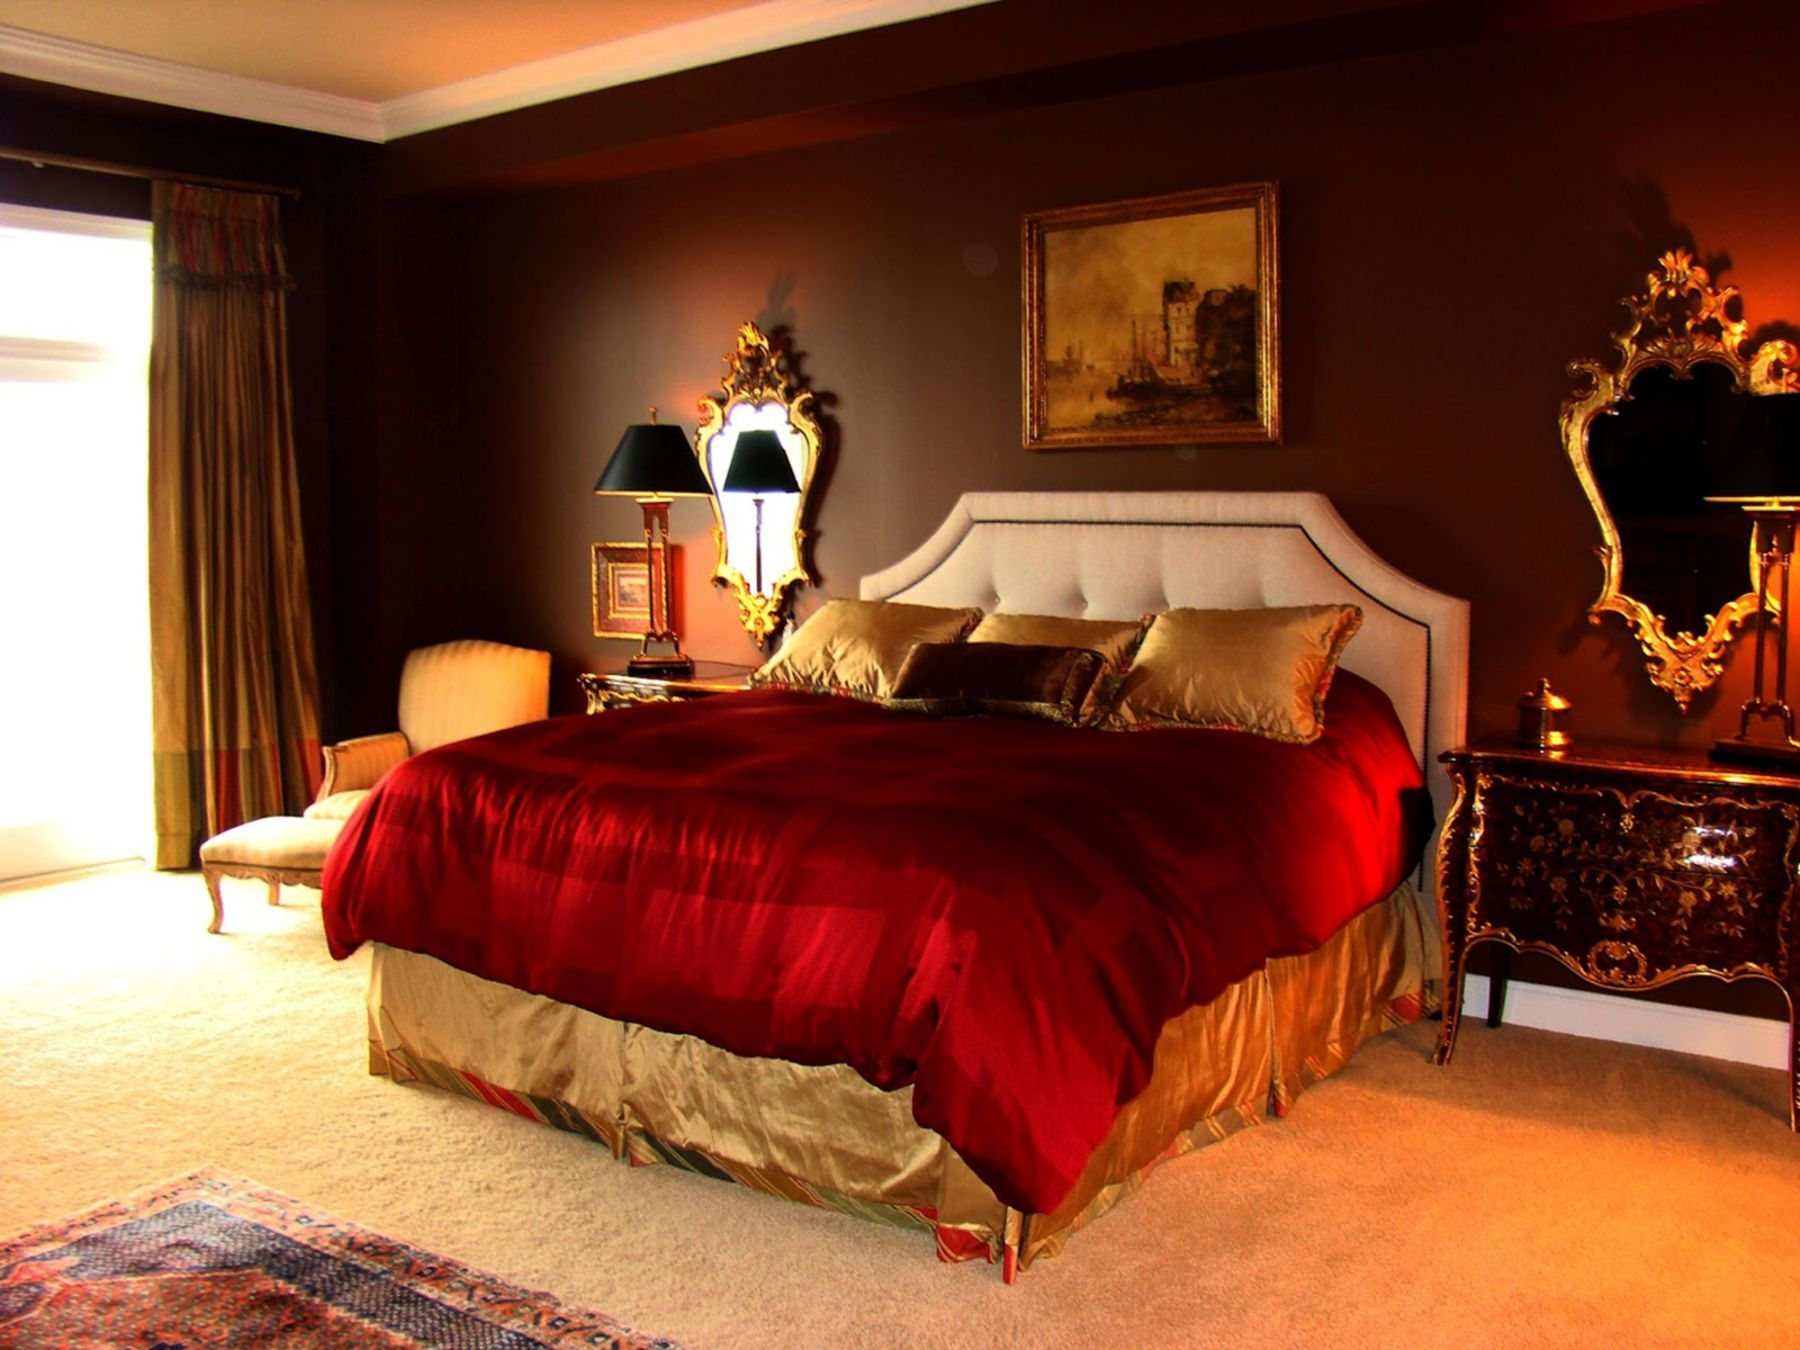 20 Lovely Romantic Bedroom Design Ideas For Feeling Amazing Moolton In 2020 Master Bedroom Colors Romantic Bedroom Colors Bedroom Red